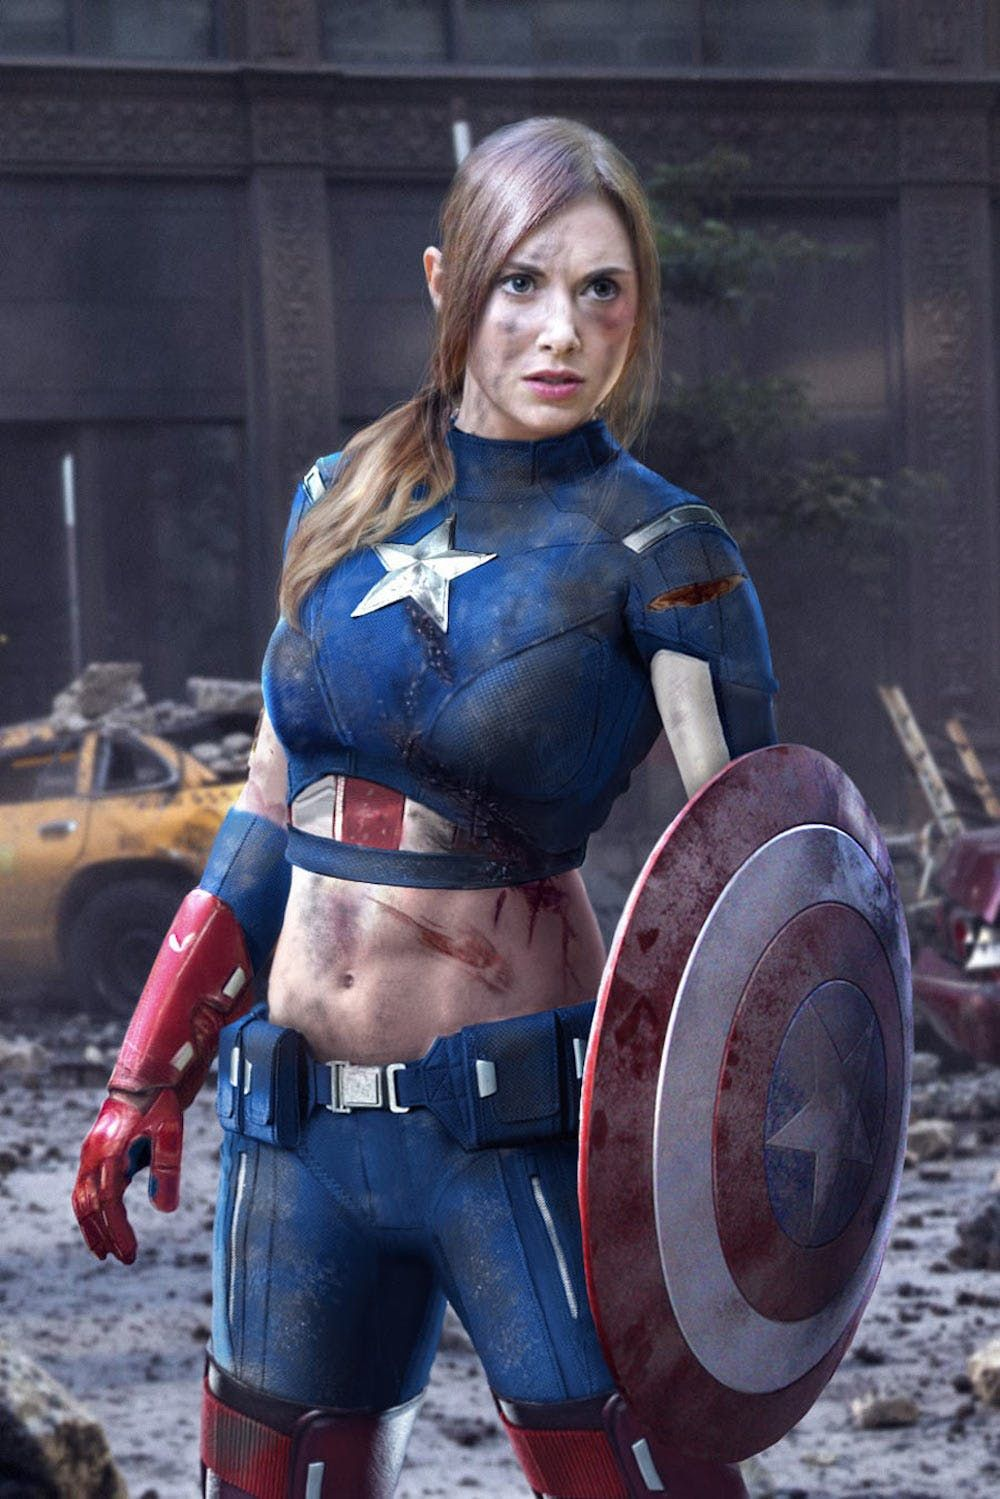 18+ Pt.Jensen Captain America A XXX Parody Blry 2020 English 100MB HDRip 480p Free Download